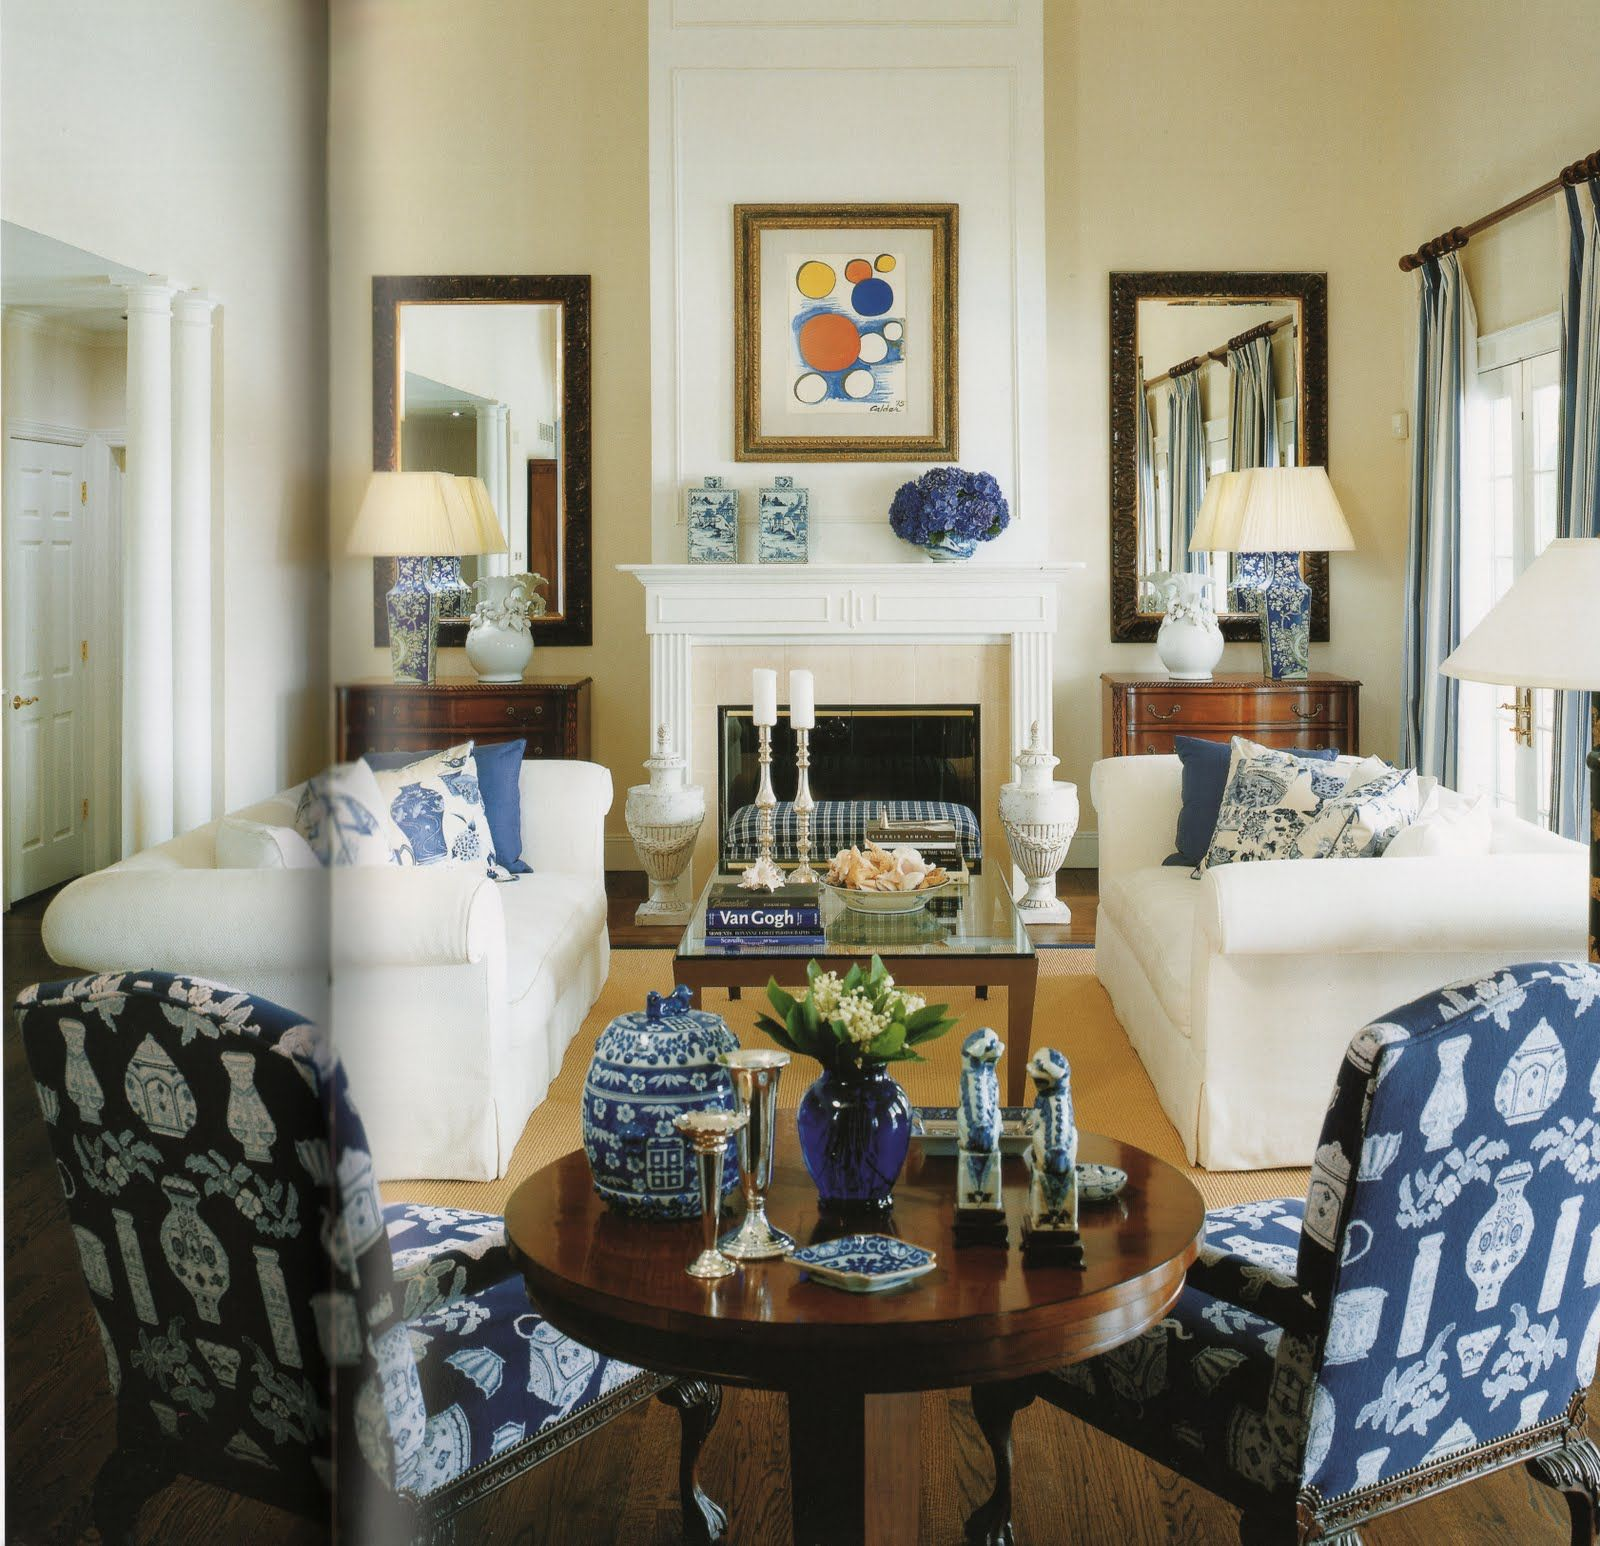 Symmetry Sets The Tone For This Pretty Living Room With Beautiful Antiques,  Lovely Furniture (